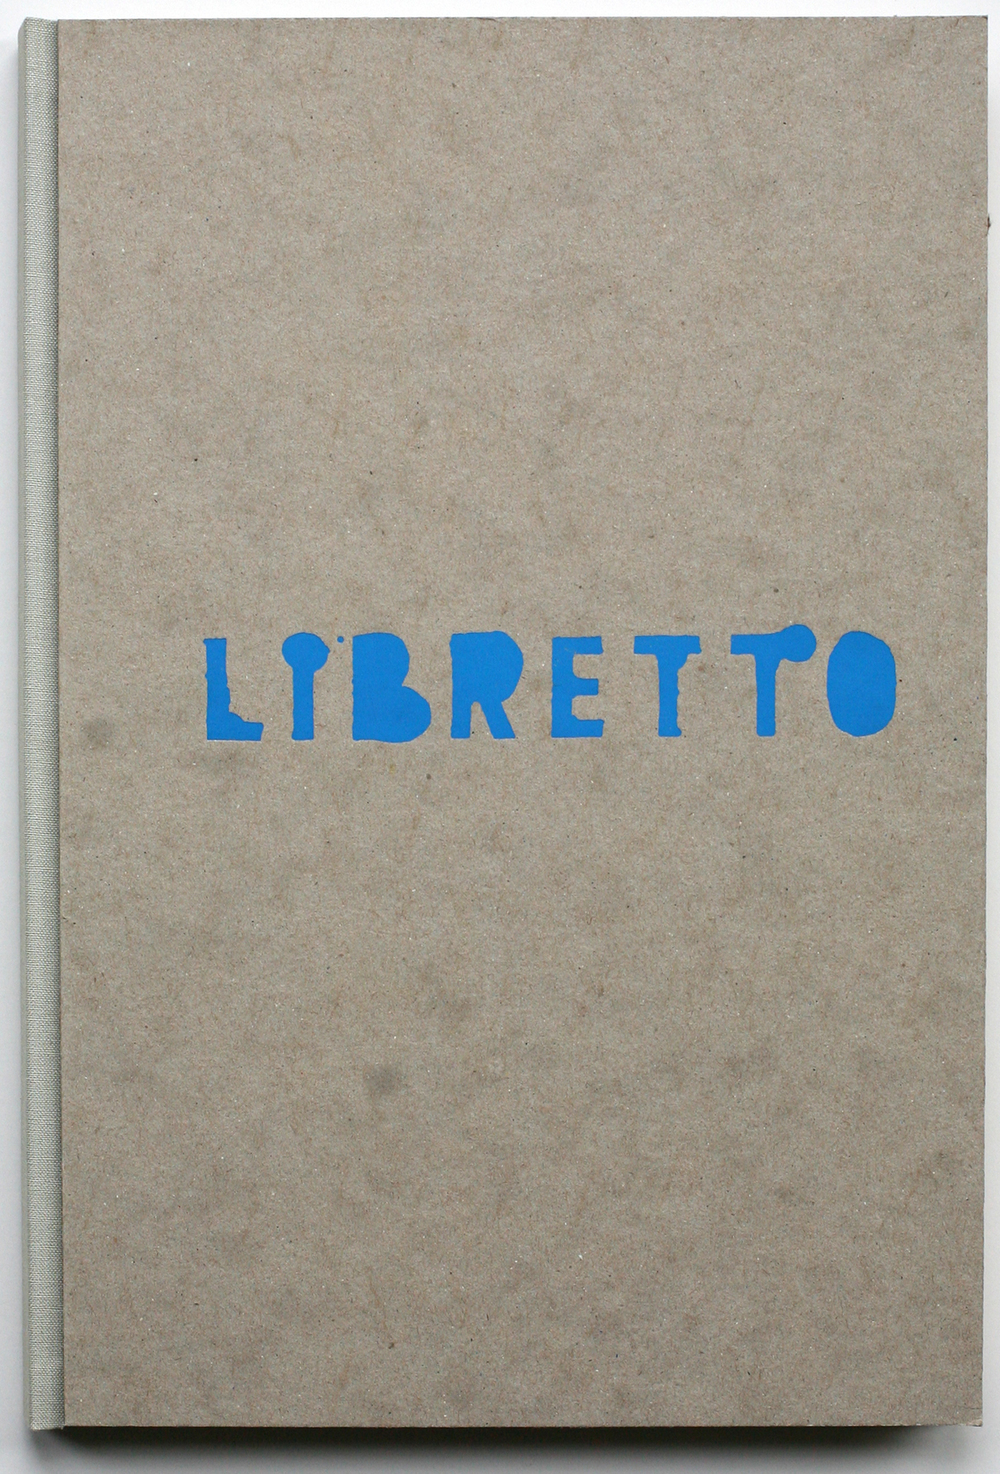 Libretto, edition of ten, 2014 (in 7 private collections, including the Achenbach Foundation)